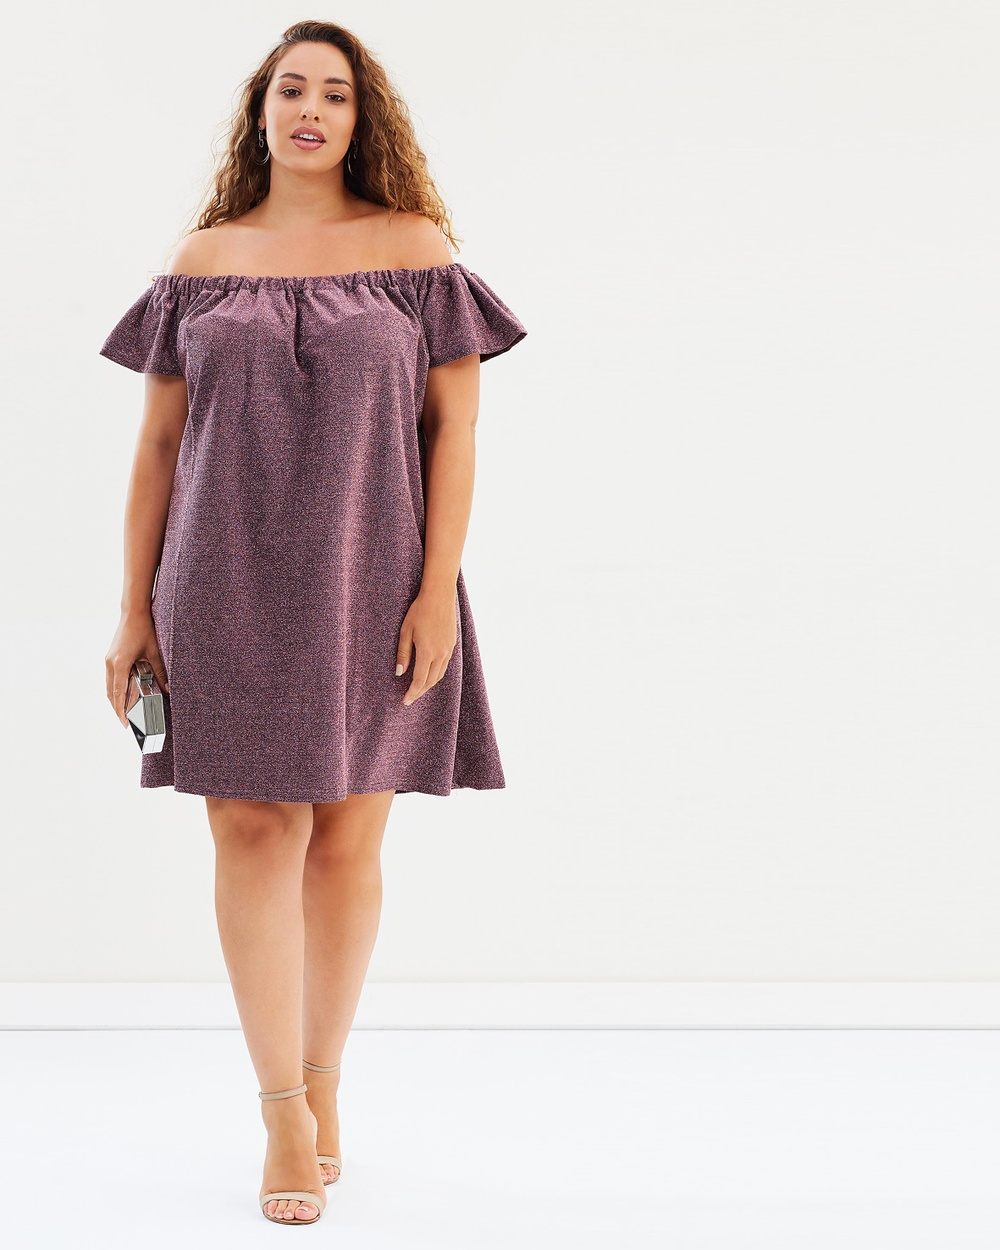 Lost Ink Plus Bardot Dress in Sparkle Jersey Dresses Pink Bardot Dress in Sparkle Jersey